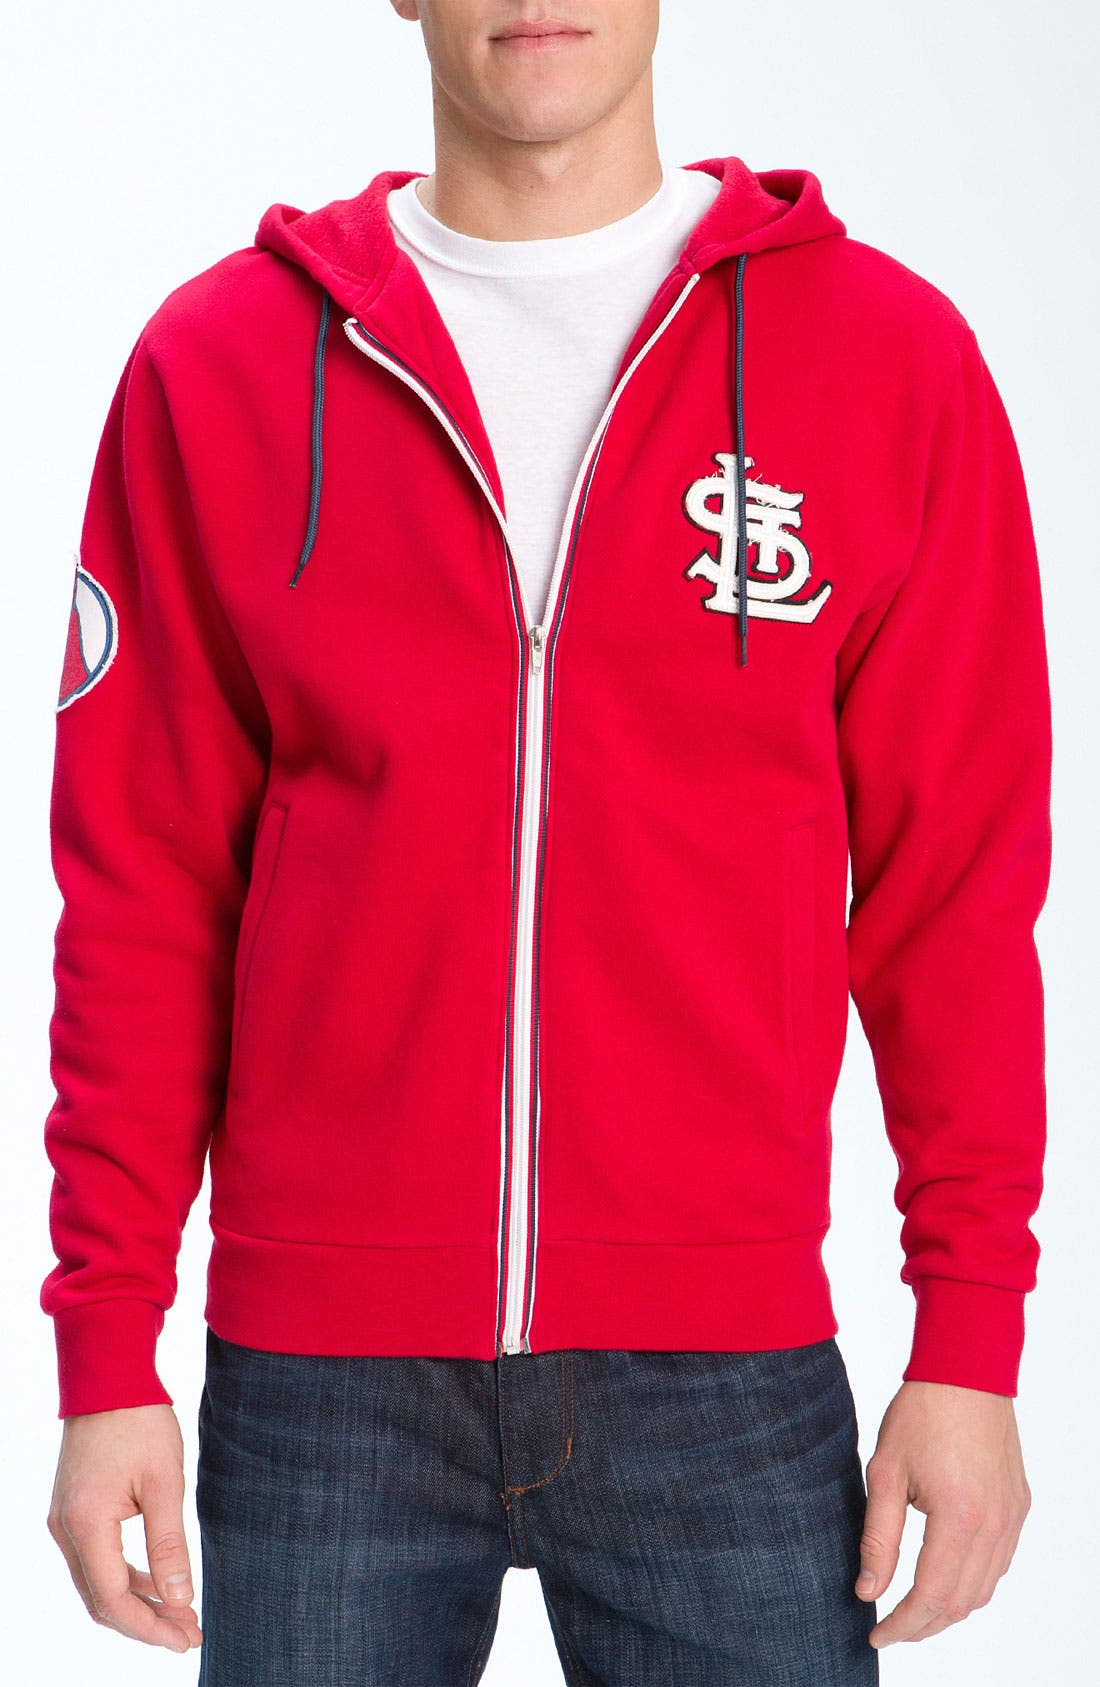 Alternate Image 1 Selected - Wright & Ditson 'St. Louis Cardinals' Hoodie